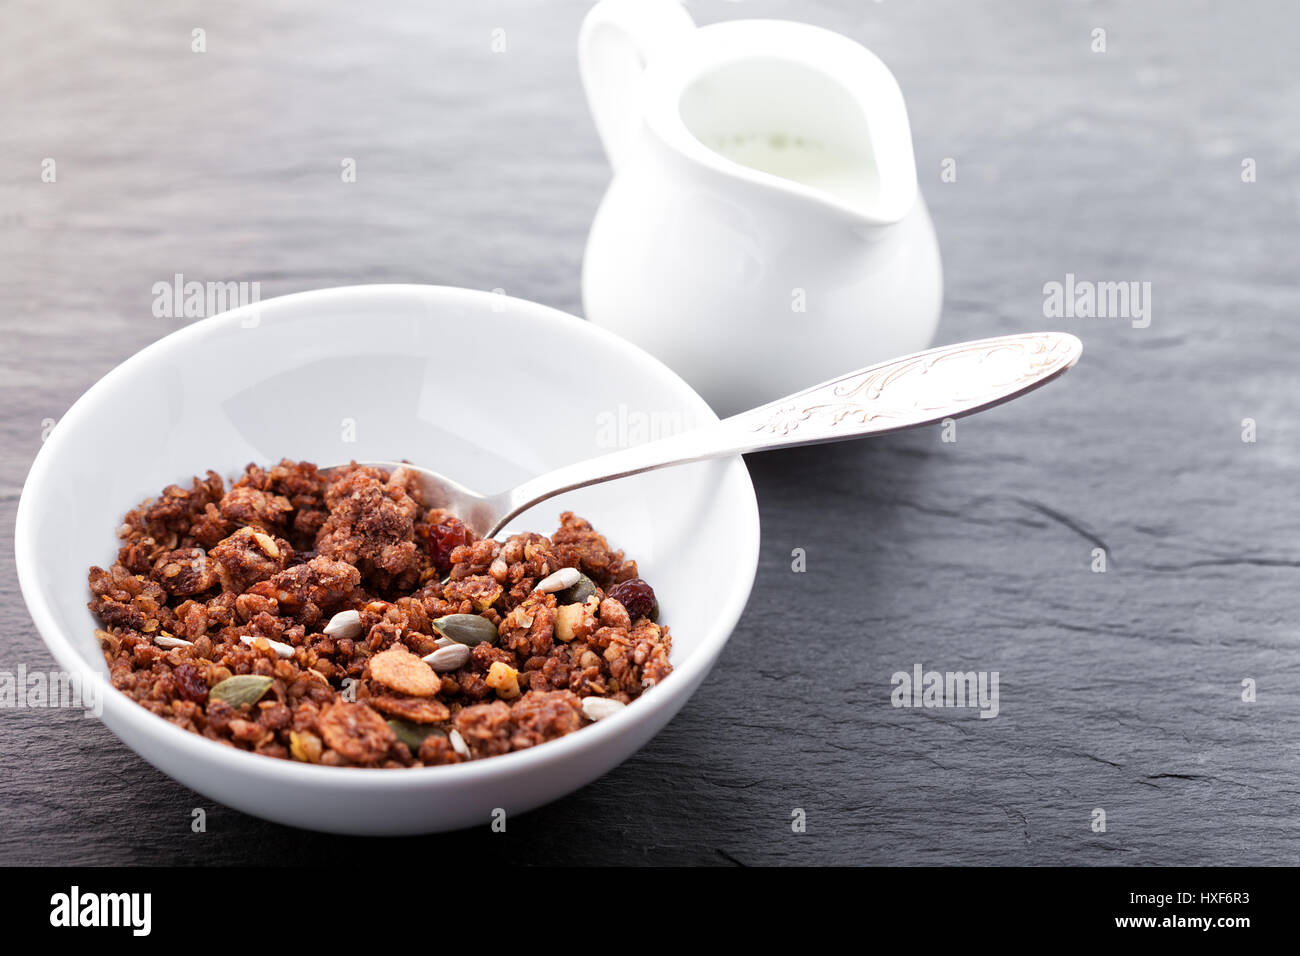 Granola. Healthy Chocolate Oat Bars - Stock Image